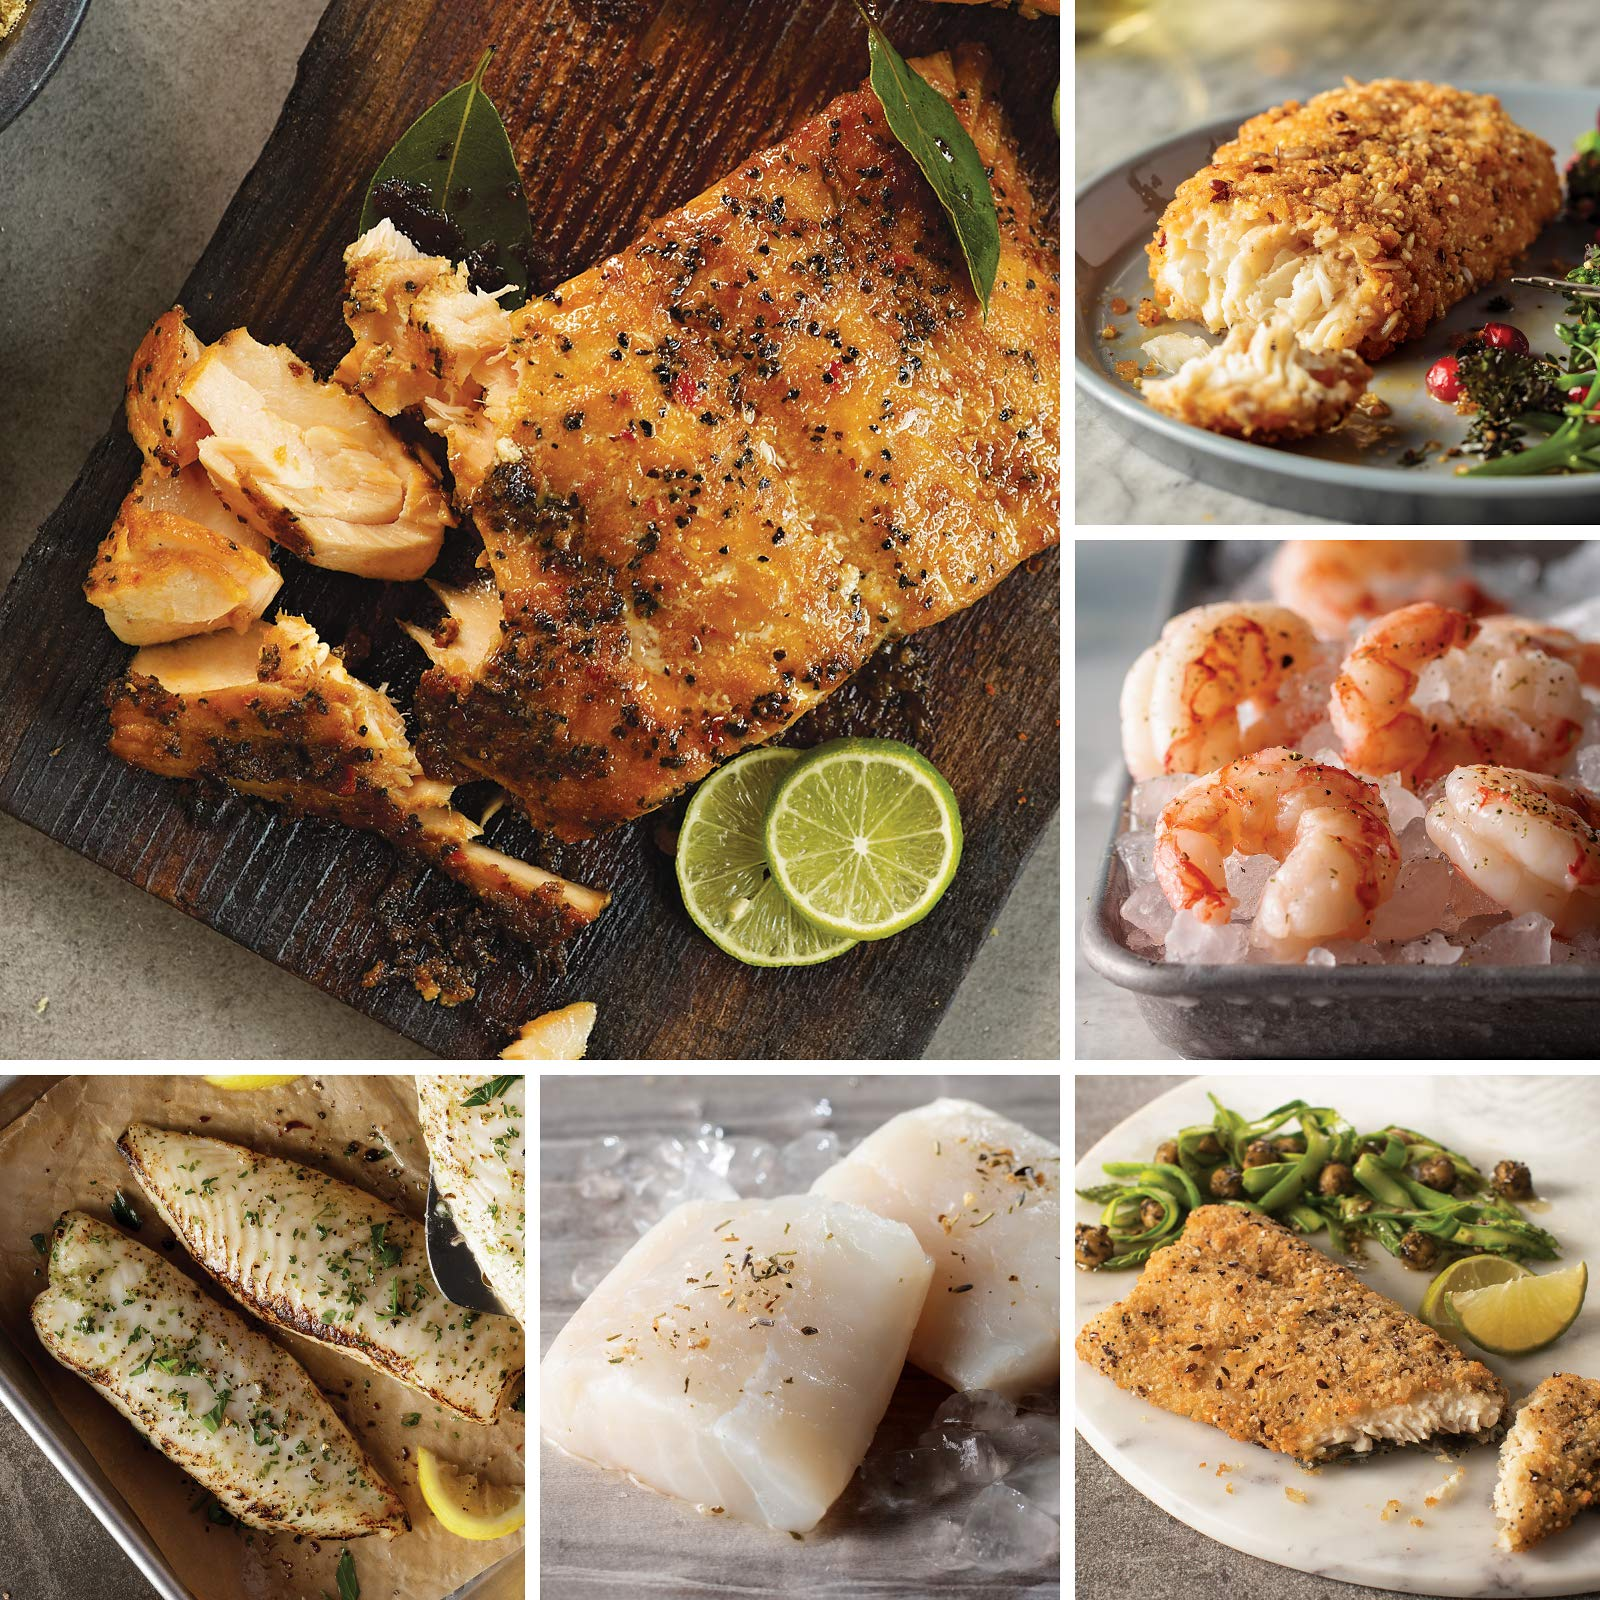 Omaha Steaks Seafood Friday Favorites (18-Piece with Marinated Salmon Fillets, Lemon-Garlic Tilapia, Wild Argentinean Red Shrimp, Rainbow Trout Fillets, Icelandic Cod Fillets, and Haddock Fillets)